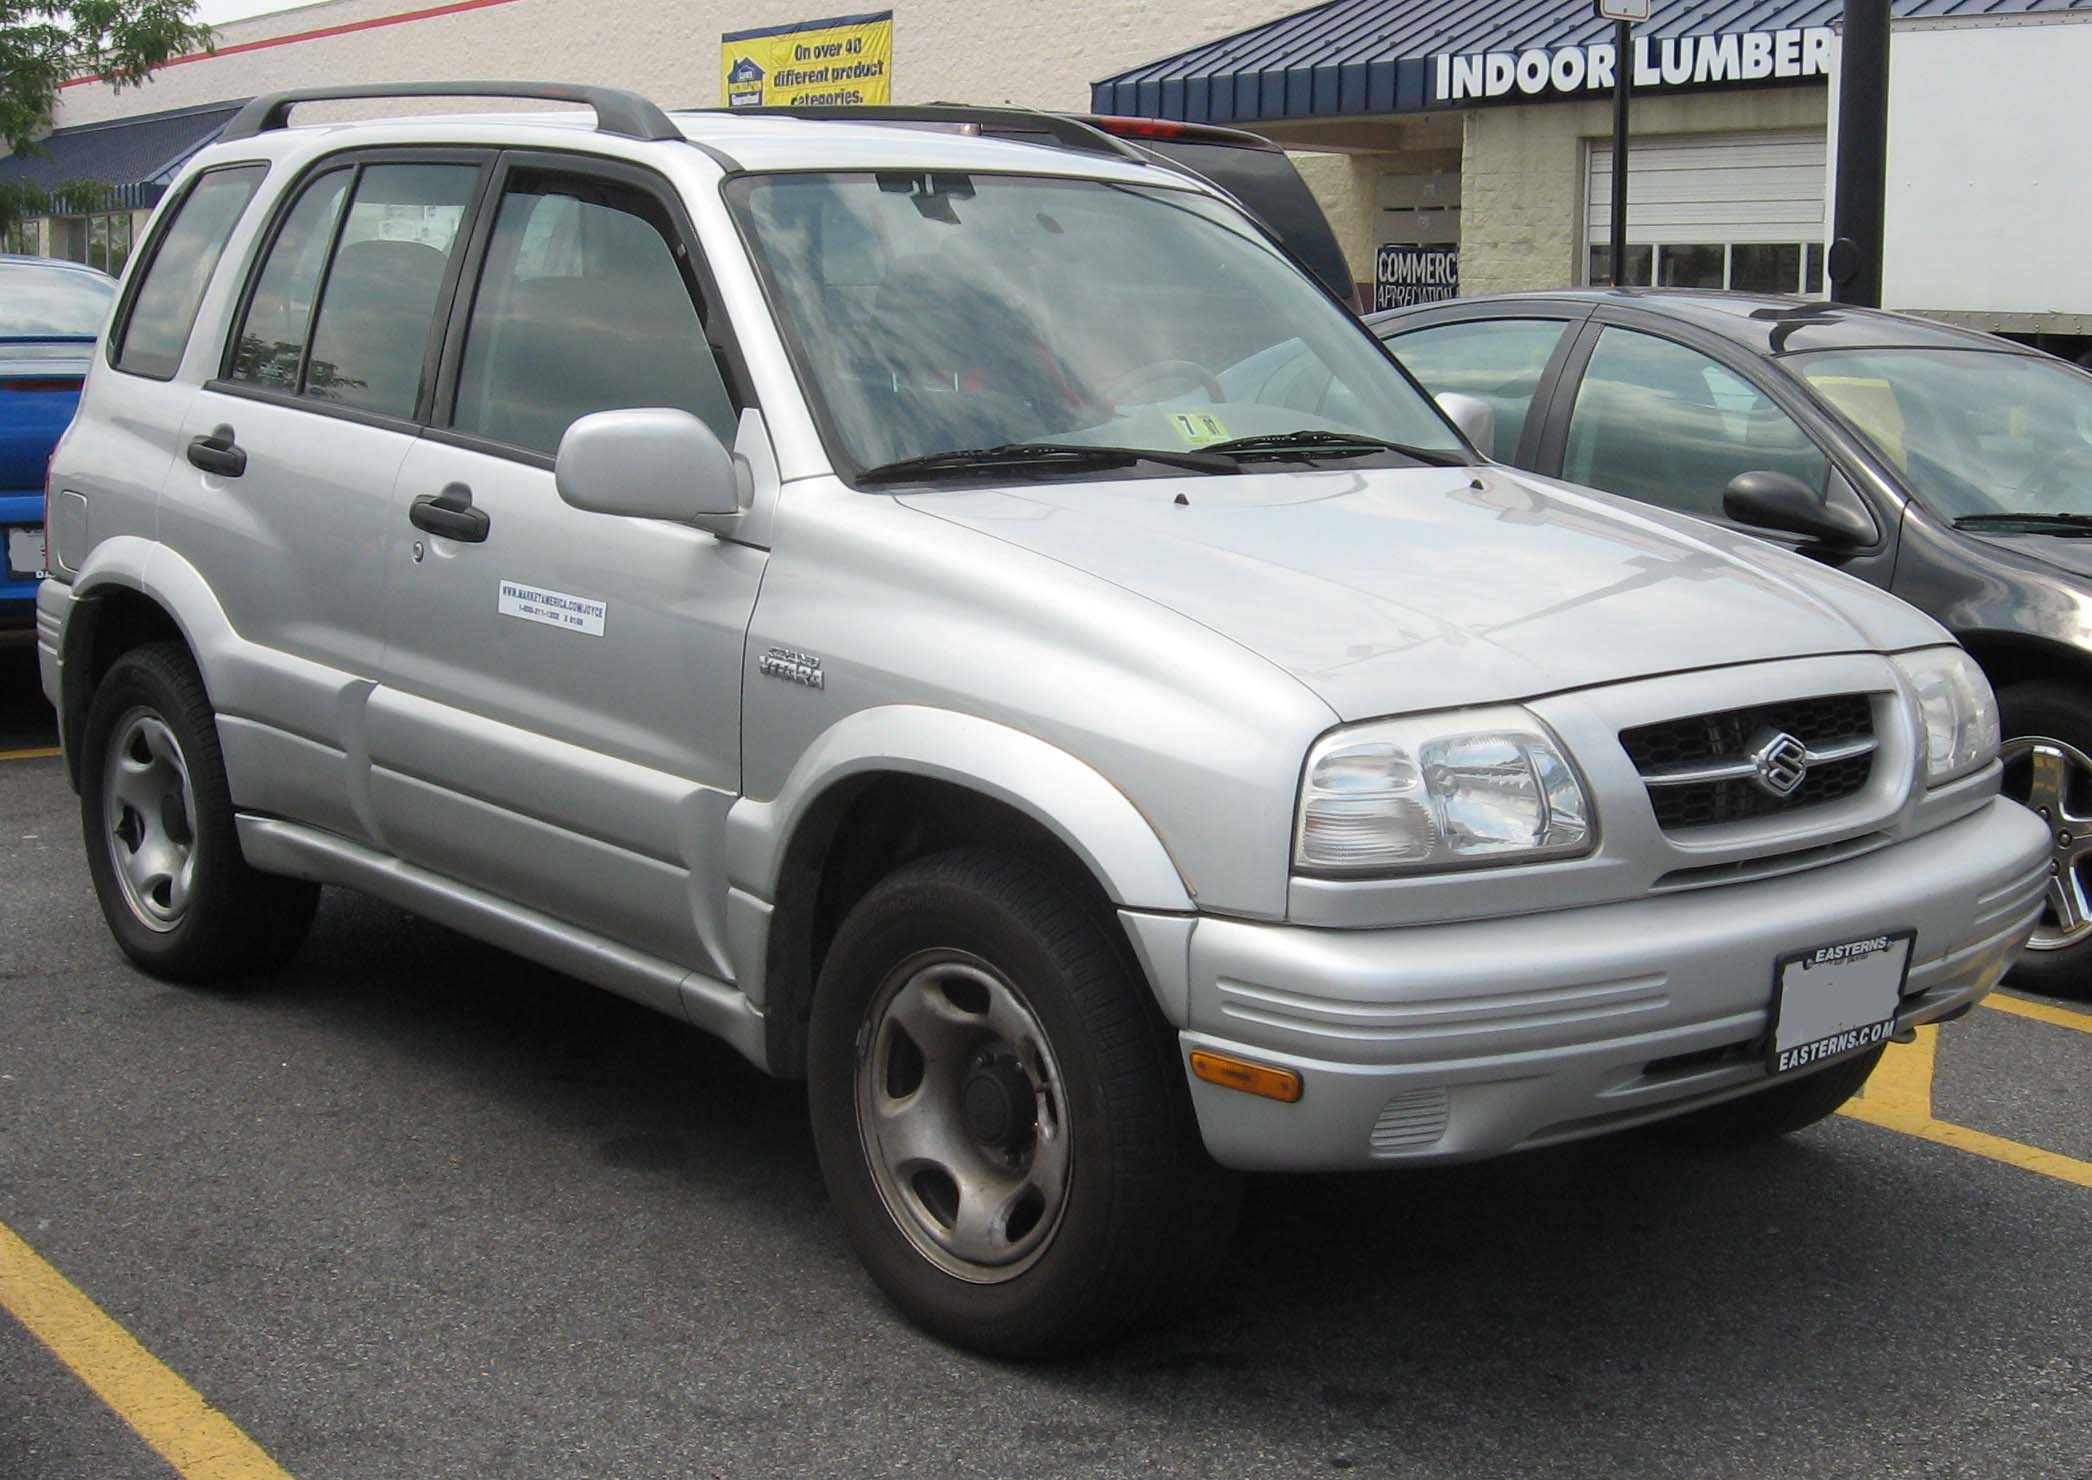 Datei:1999-01 Suzuki Grand Vitara.jpg – Wikipedia